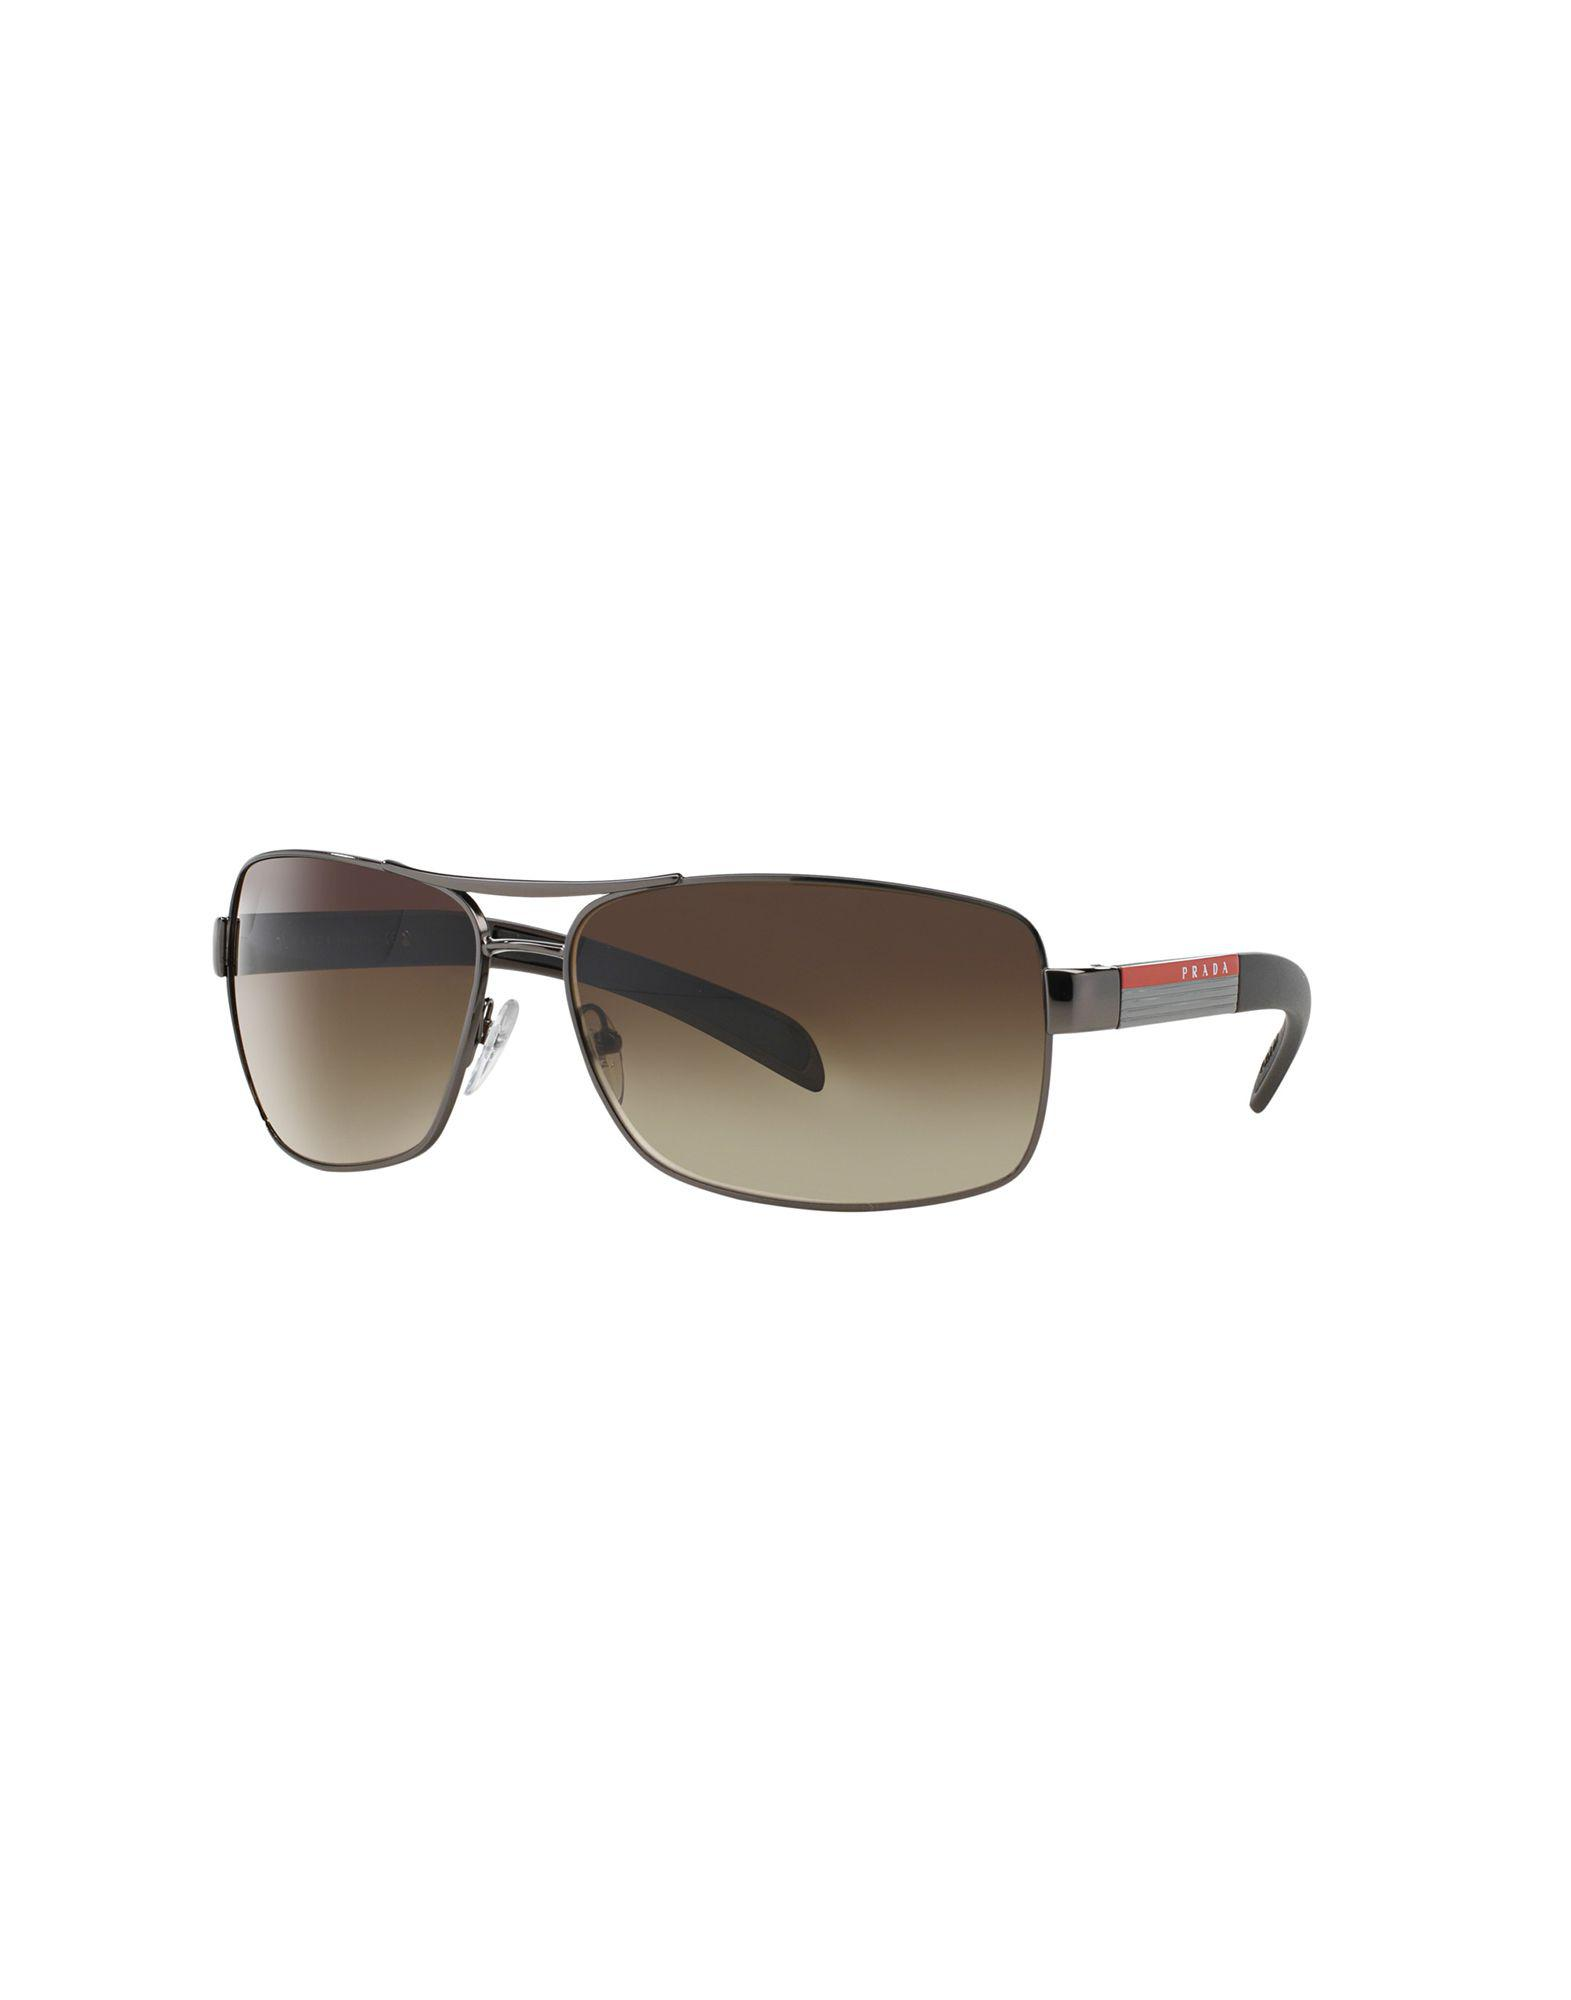 Sunglasses - PR 0PR 04TS 55 7S05D1 - brown, gold, blue - Sunglasses for ladies Prada